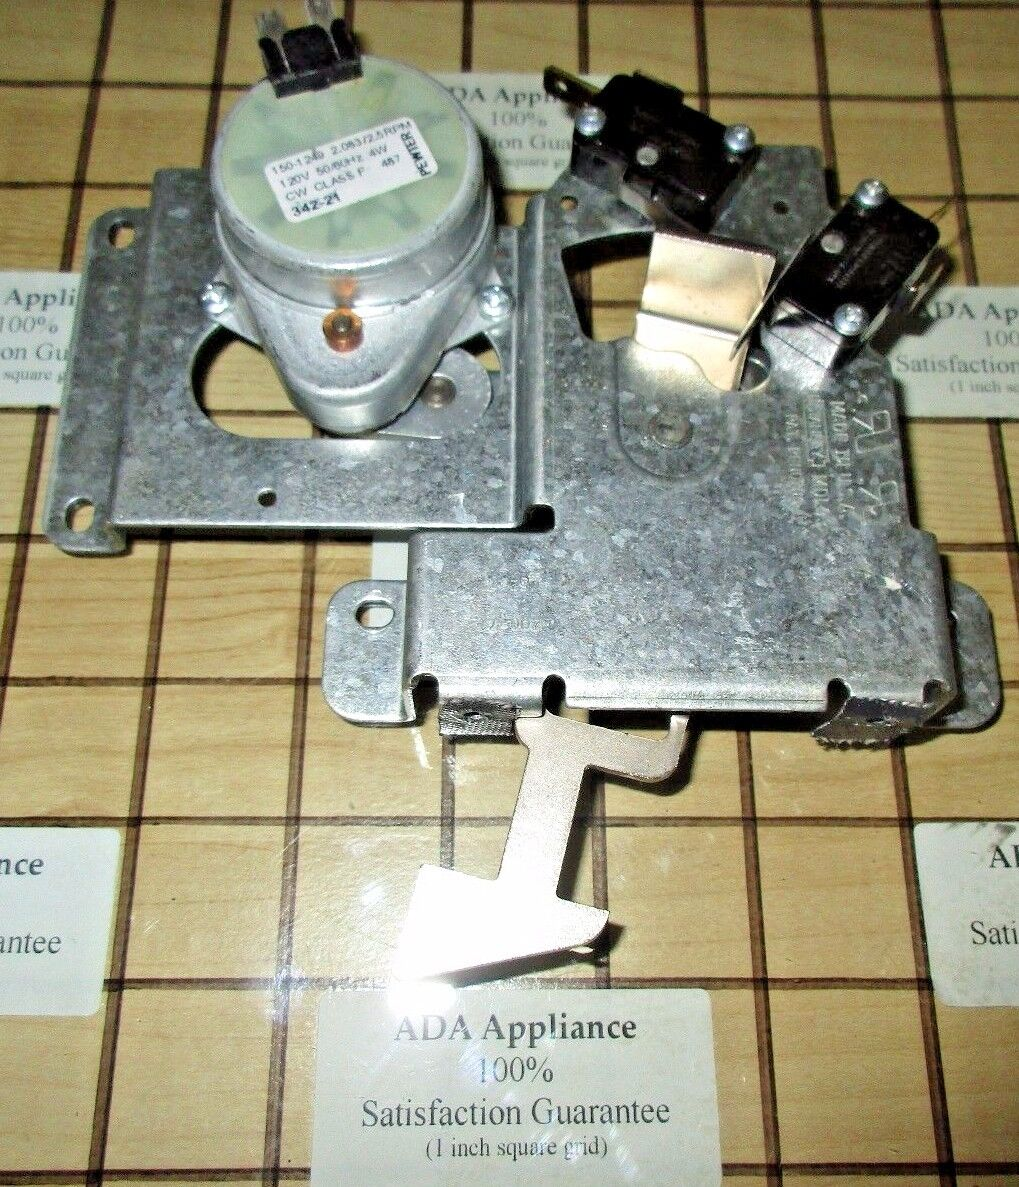 NEW Thermador Oven Door Latch 14-33-232, 14-33-874, 00486757, 486757 SATISF GUAR